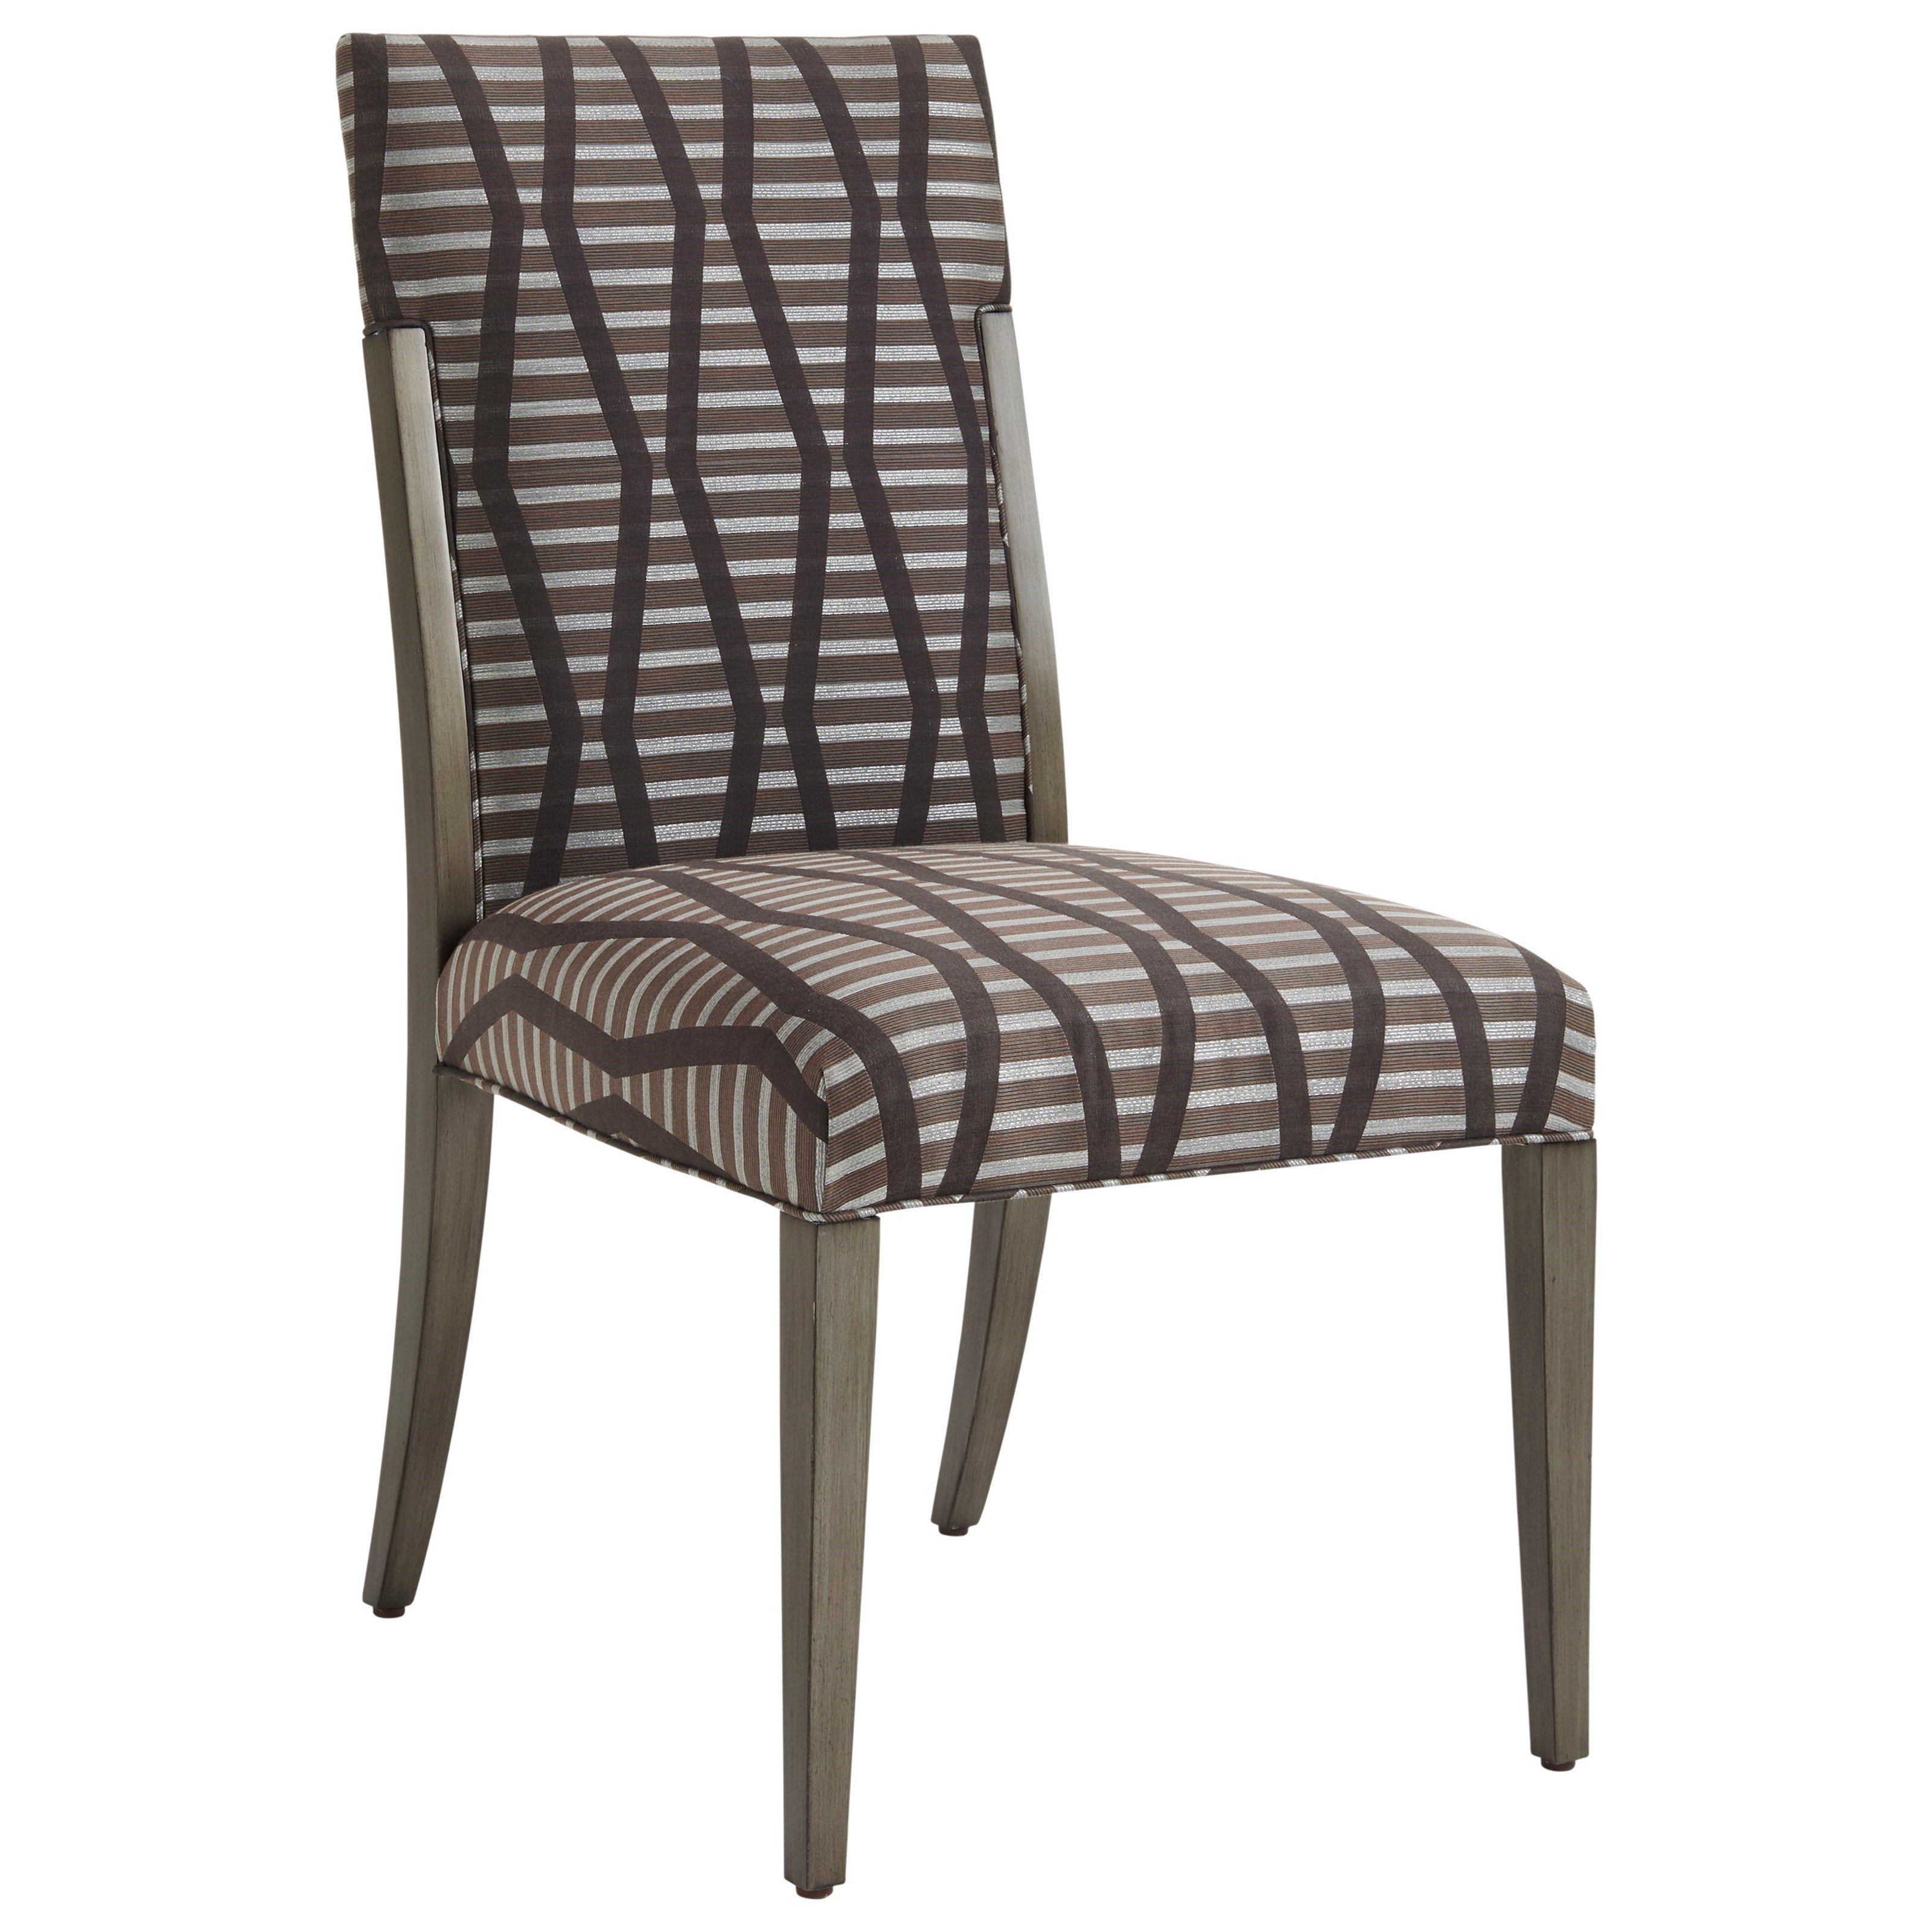 Ariana Saverne Upholstered Side Chair by Lexington at Fisher Home Furnishings